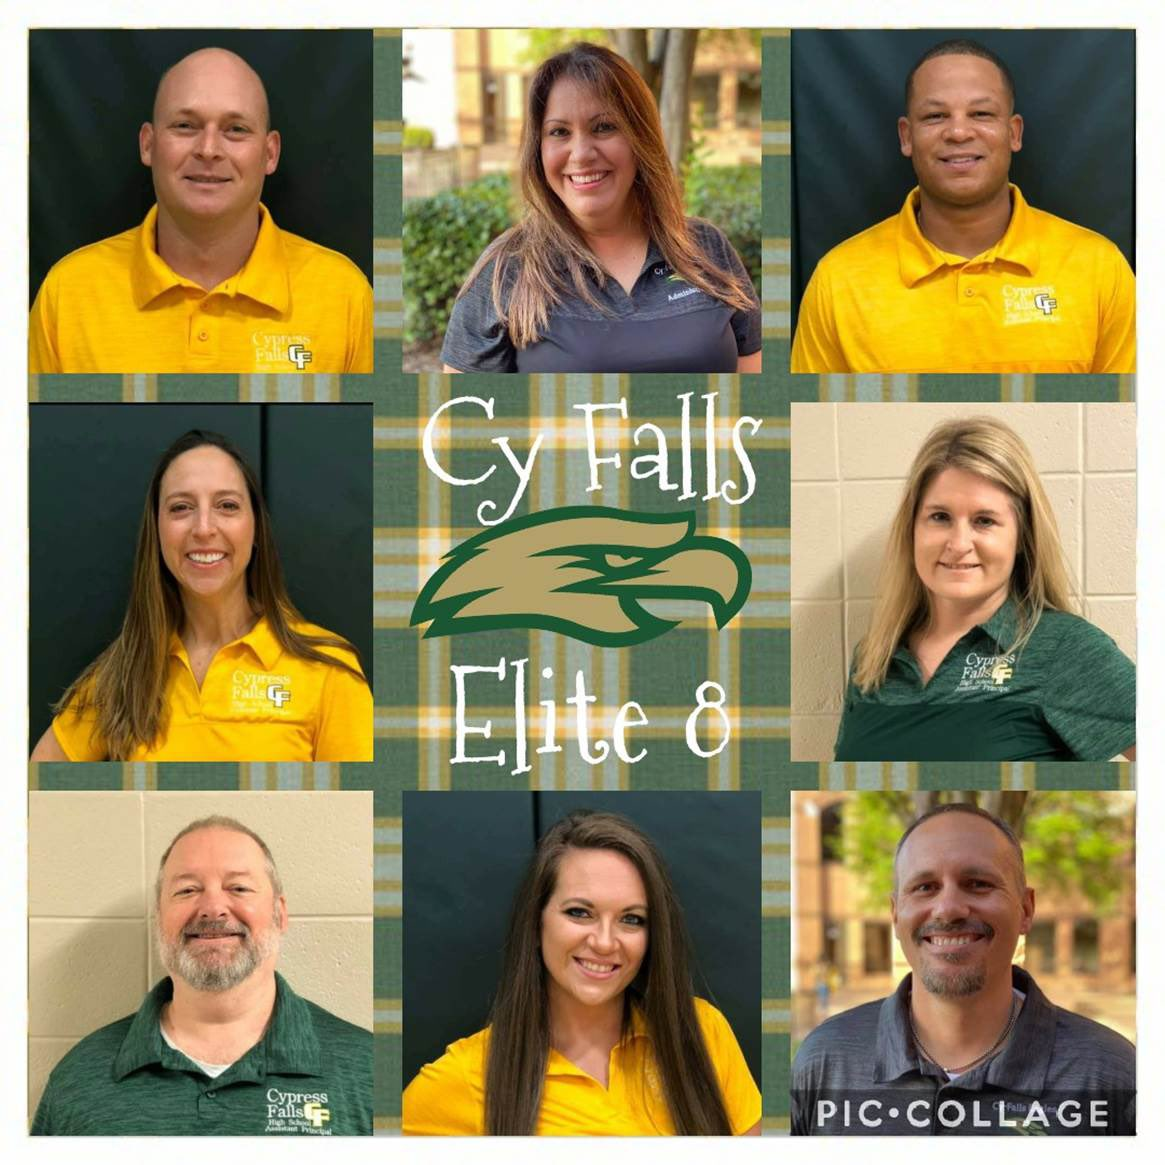 Great team players! Always impressed with @cyfallshs administration and their pride in their kids and school!